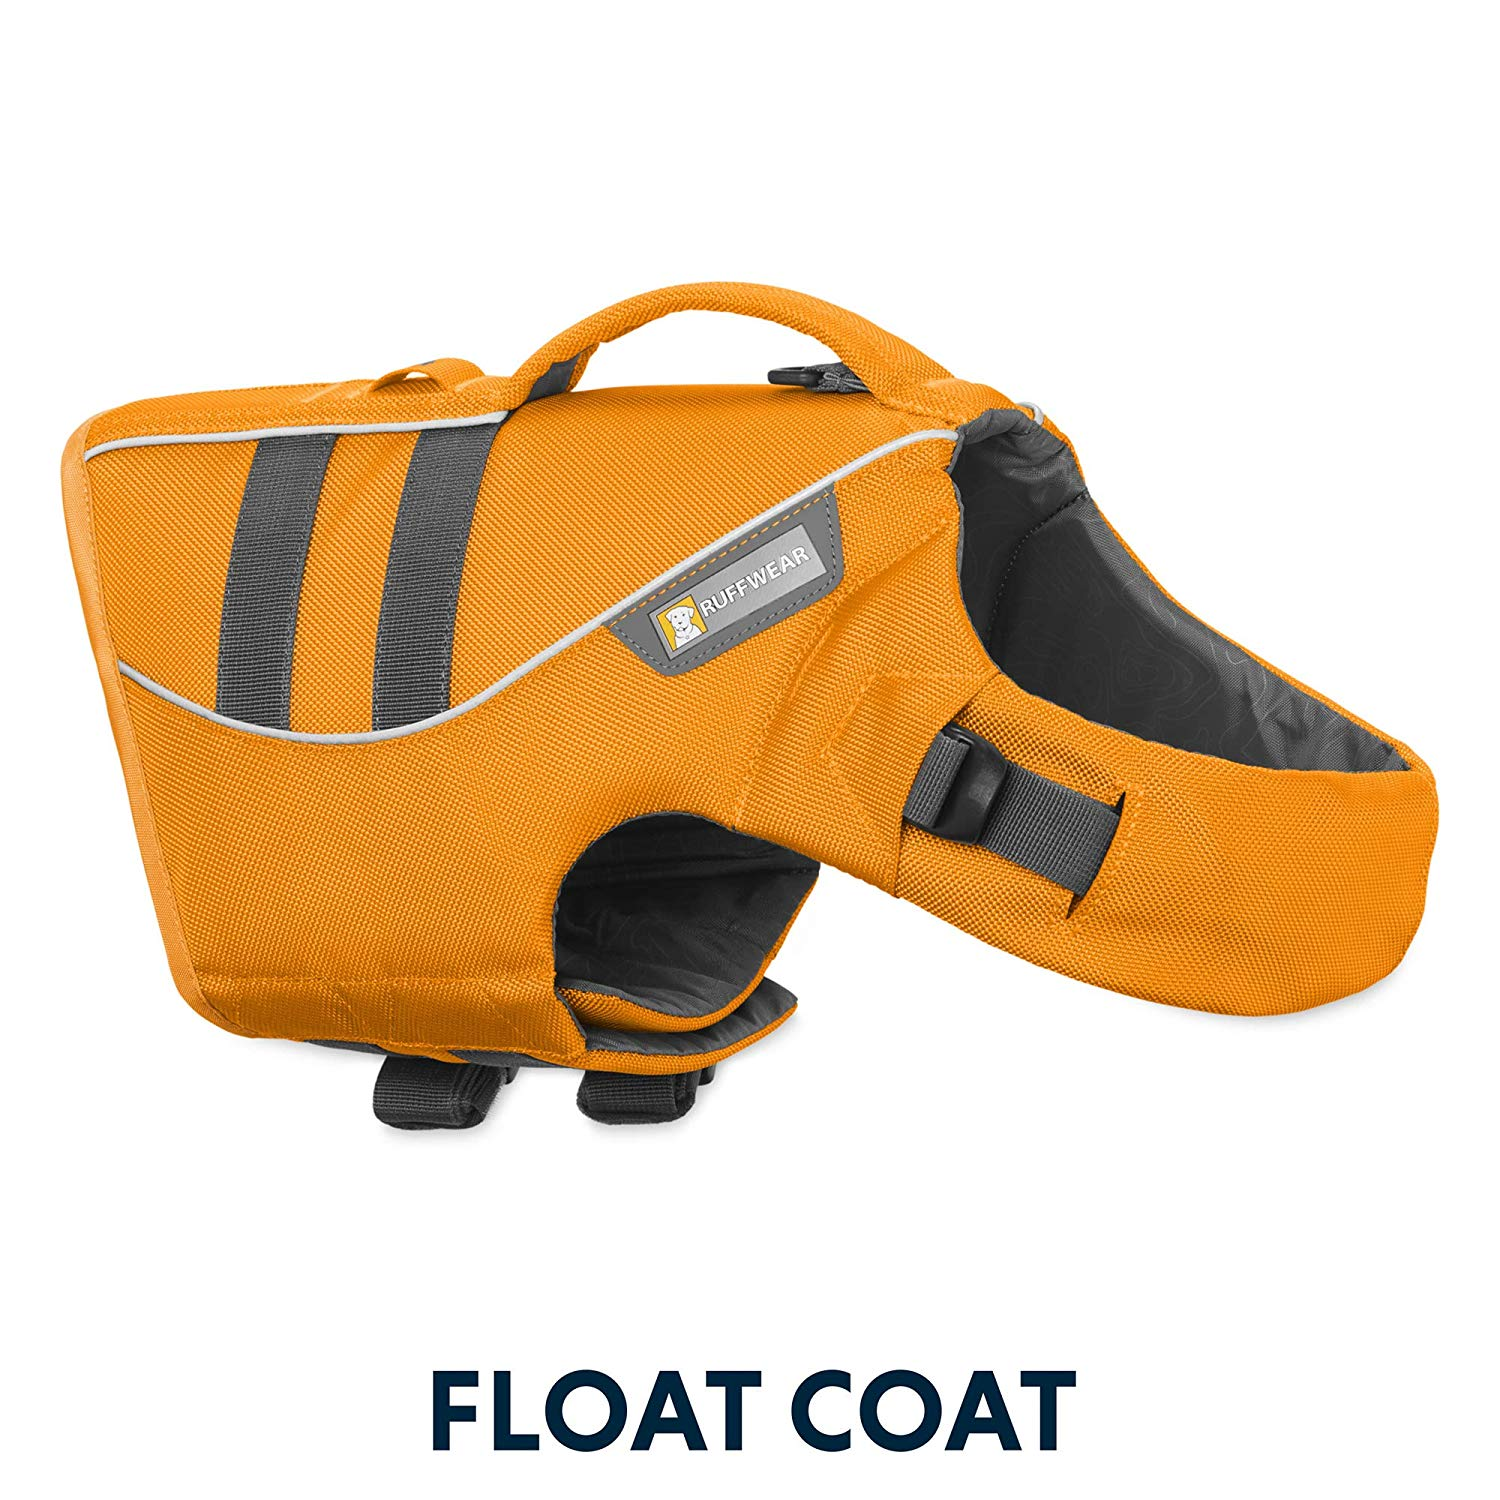 Ruffwear's K9 Float Coat